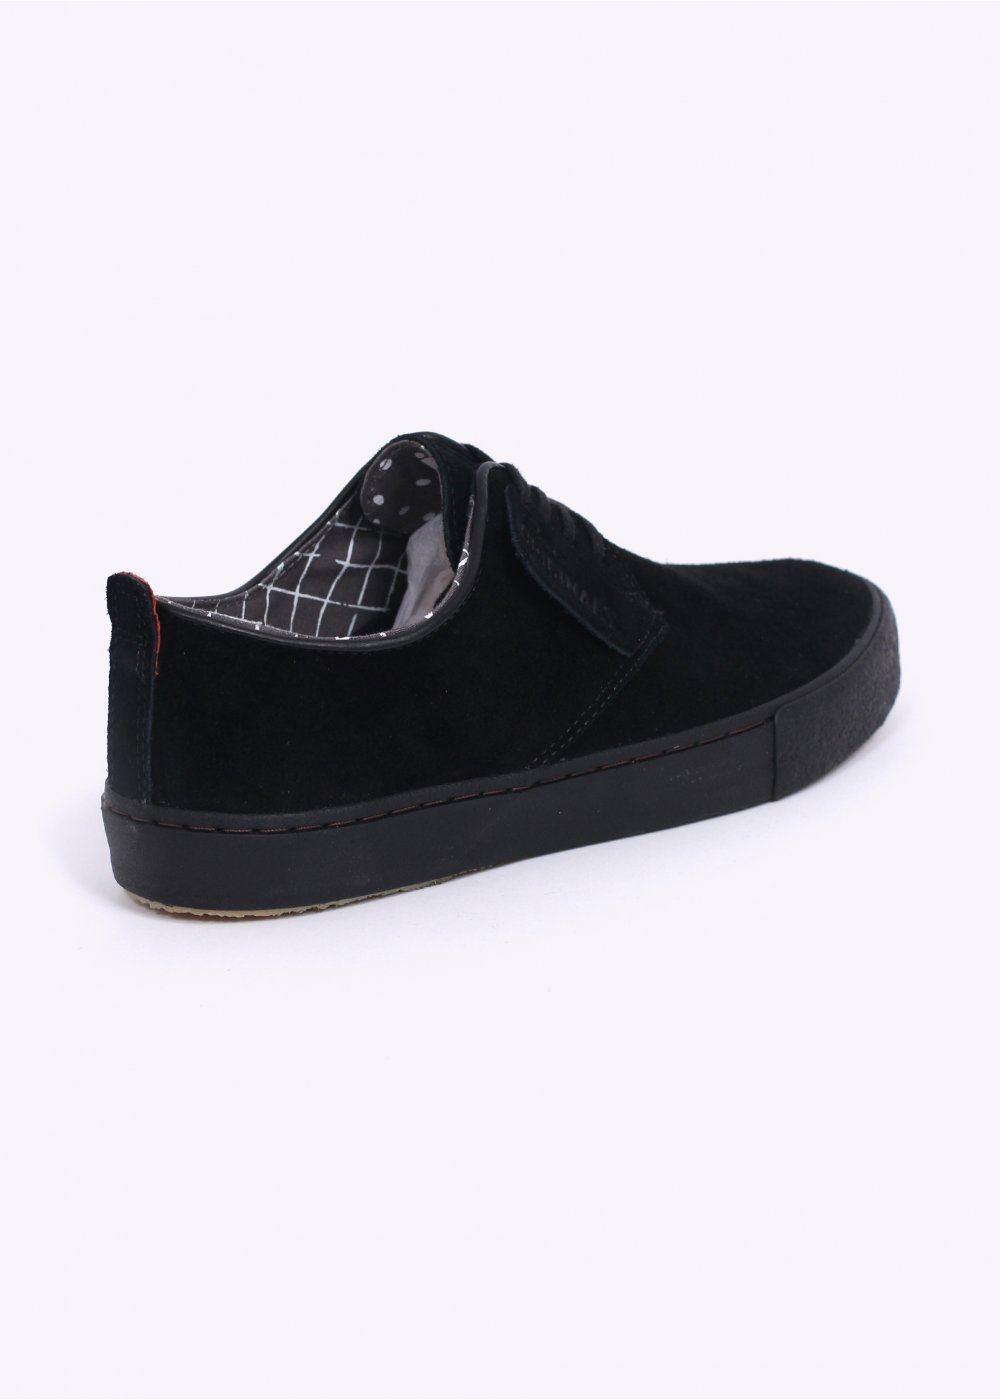 Clarks Desert Vulc Black Suede Shoes